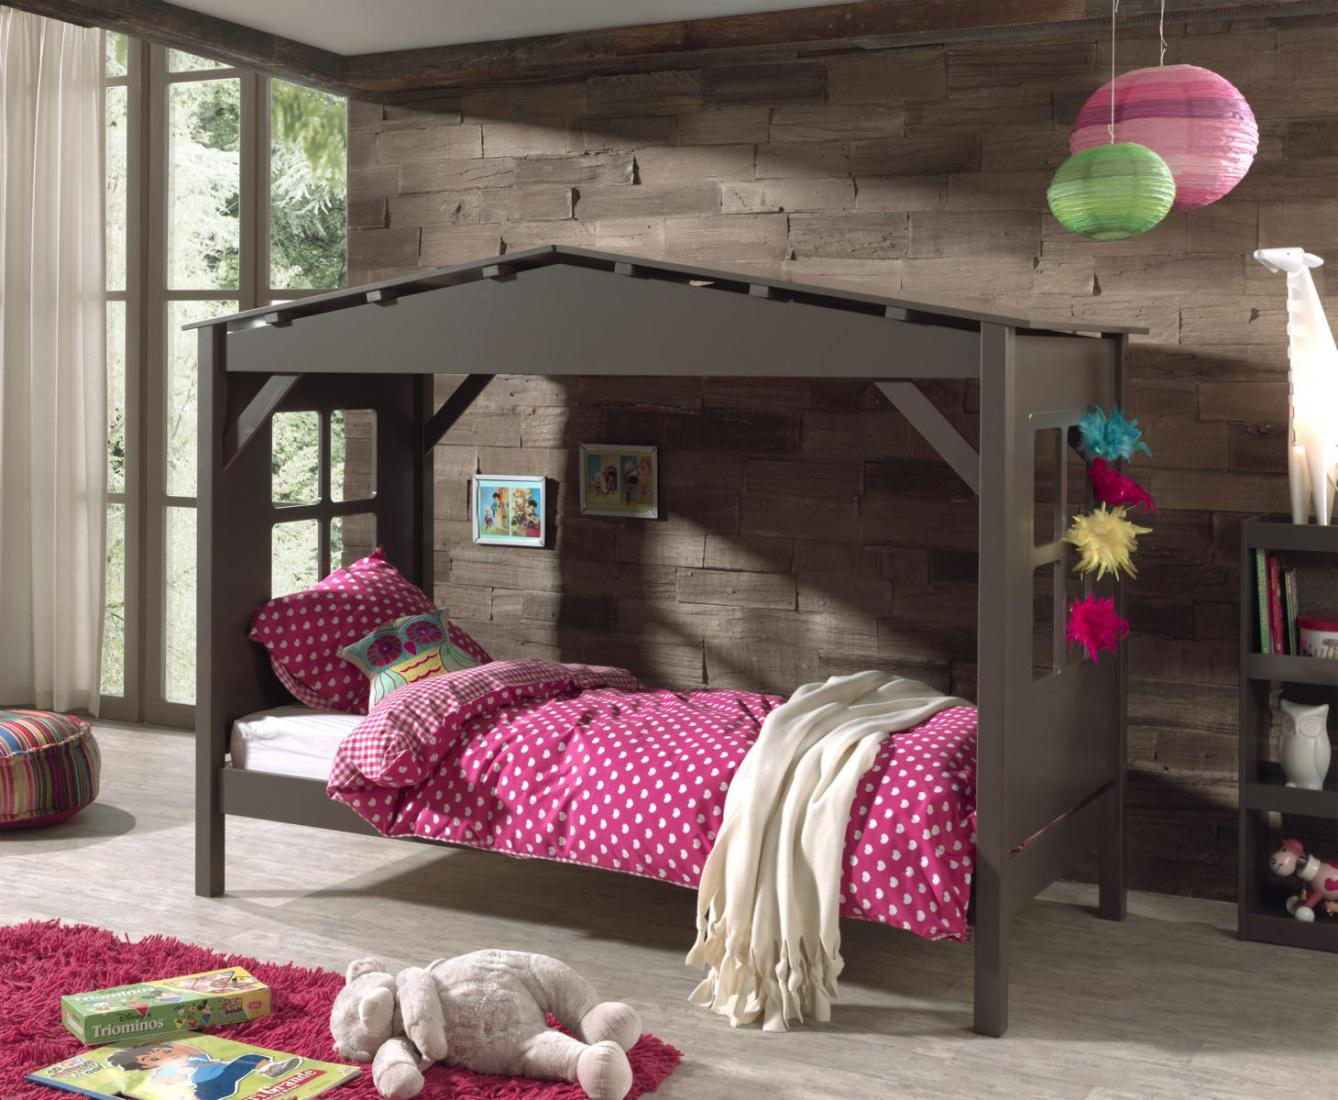 kinderbett haus vilvi in kiefer teilmassiv taupe kaufen bei m bel lux. Black Bedroom Furniture Sets. Home Design Ideas